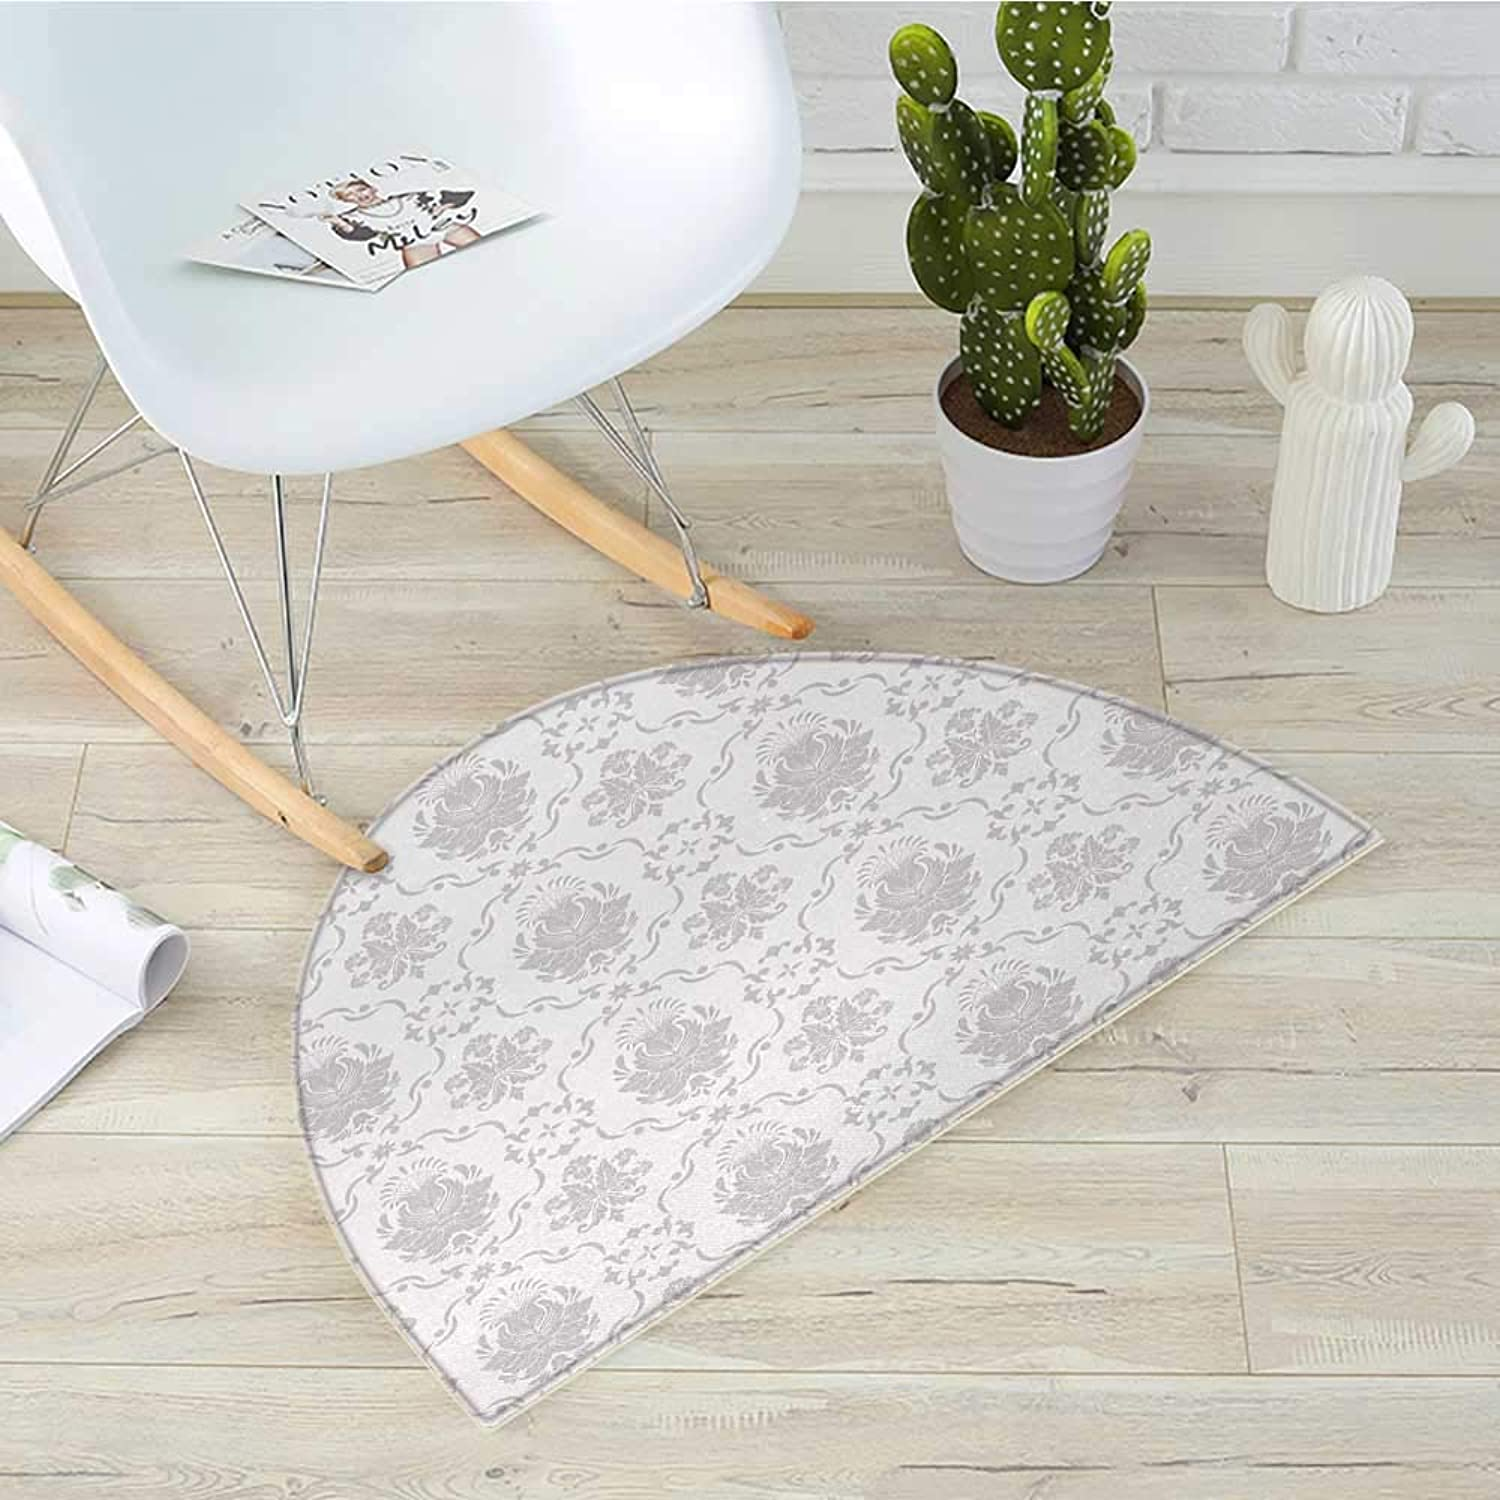 Grey Semicircular CushionClassic Victorian Floral Patterns Tulips Nostalgic Romantic Modern in Vintage Style Bohemian Entry Door Mat H 39.3  xD 59  Grey